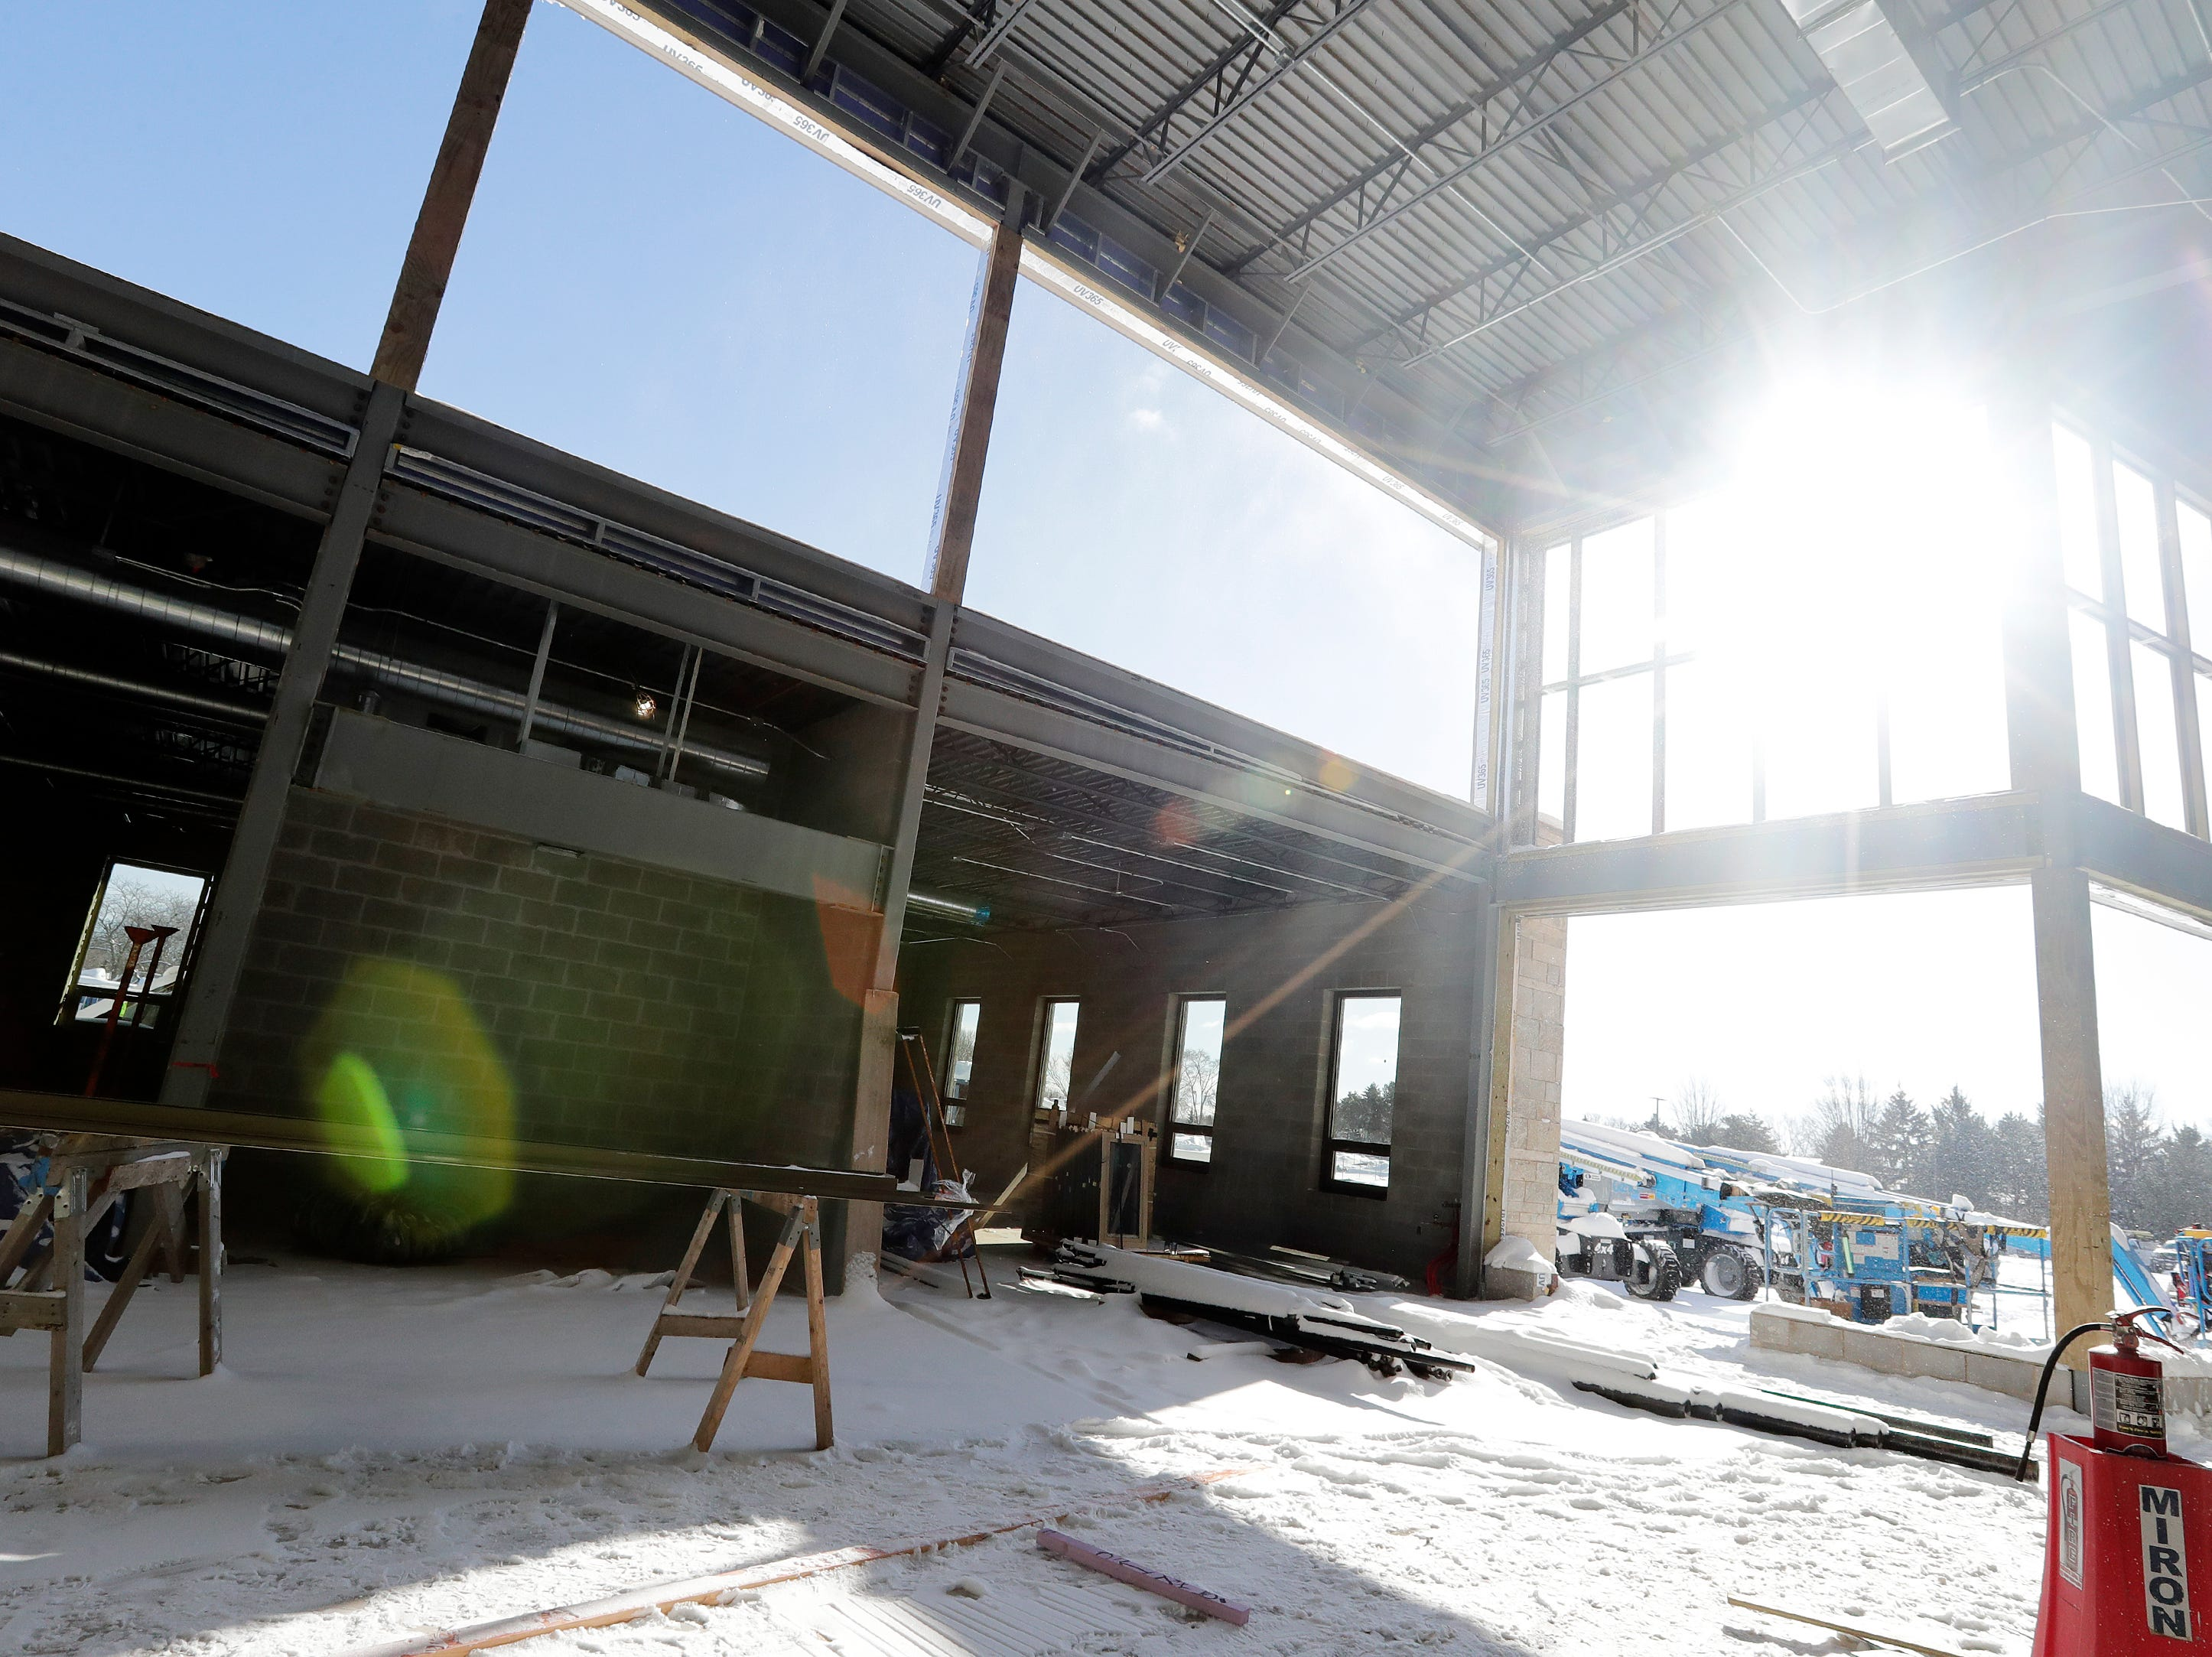 The under-construction cafeteria at Baird Elementary School is shown on Wednesday, February 13, 2019 in Green Bay, Wis.